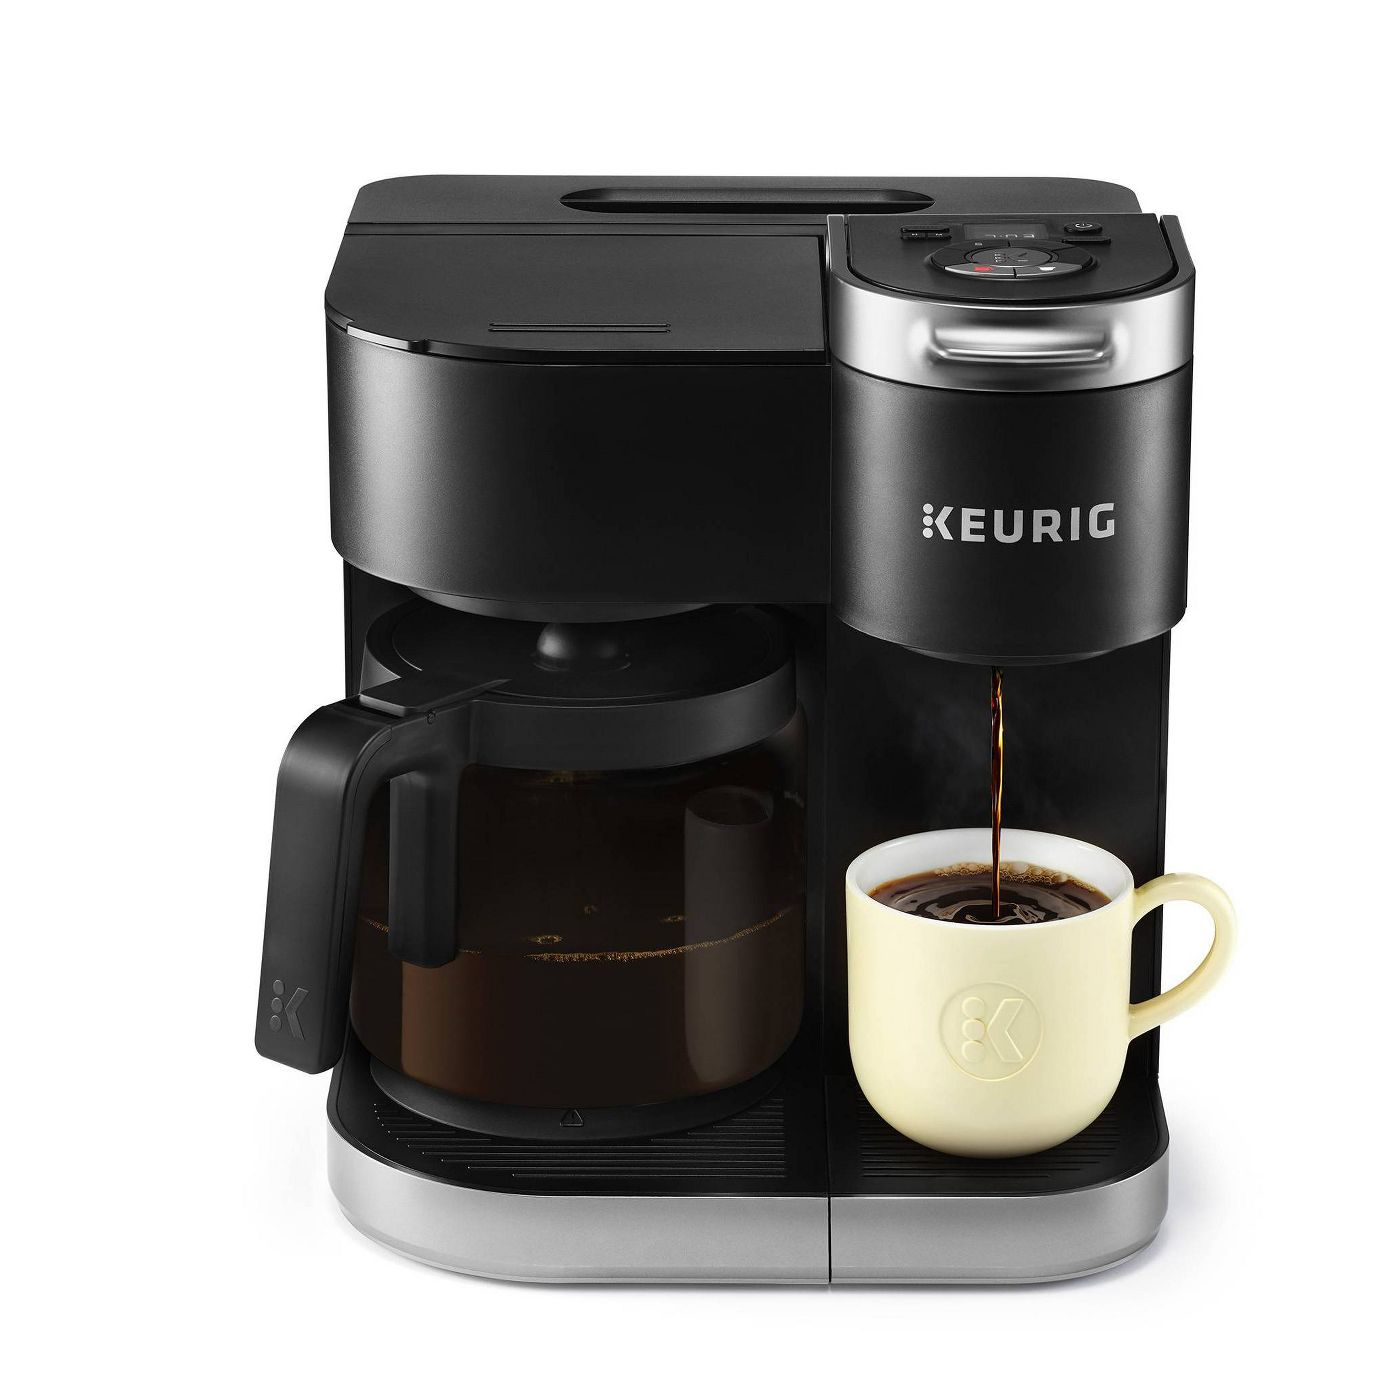 Keurig K-Duo Single-Serve and Carafe Coffee Maker